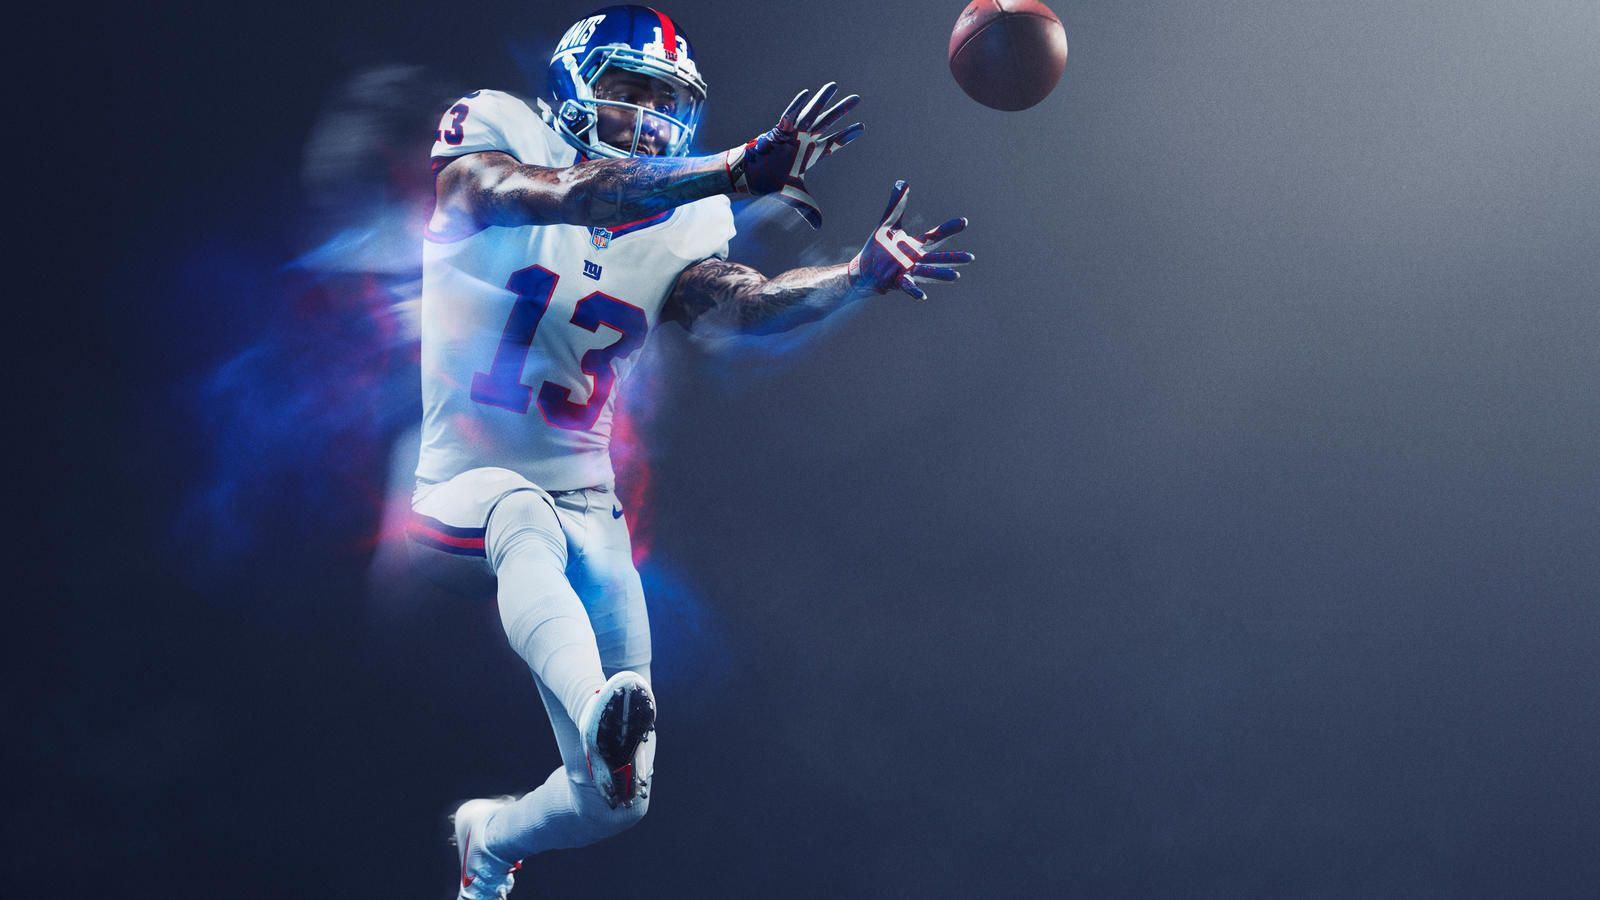 official photos 00d58 ca3f9 Pin by Milan Reyes on General | Nfl color rush uniforms ...